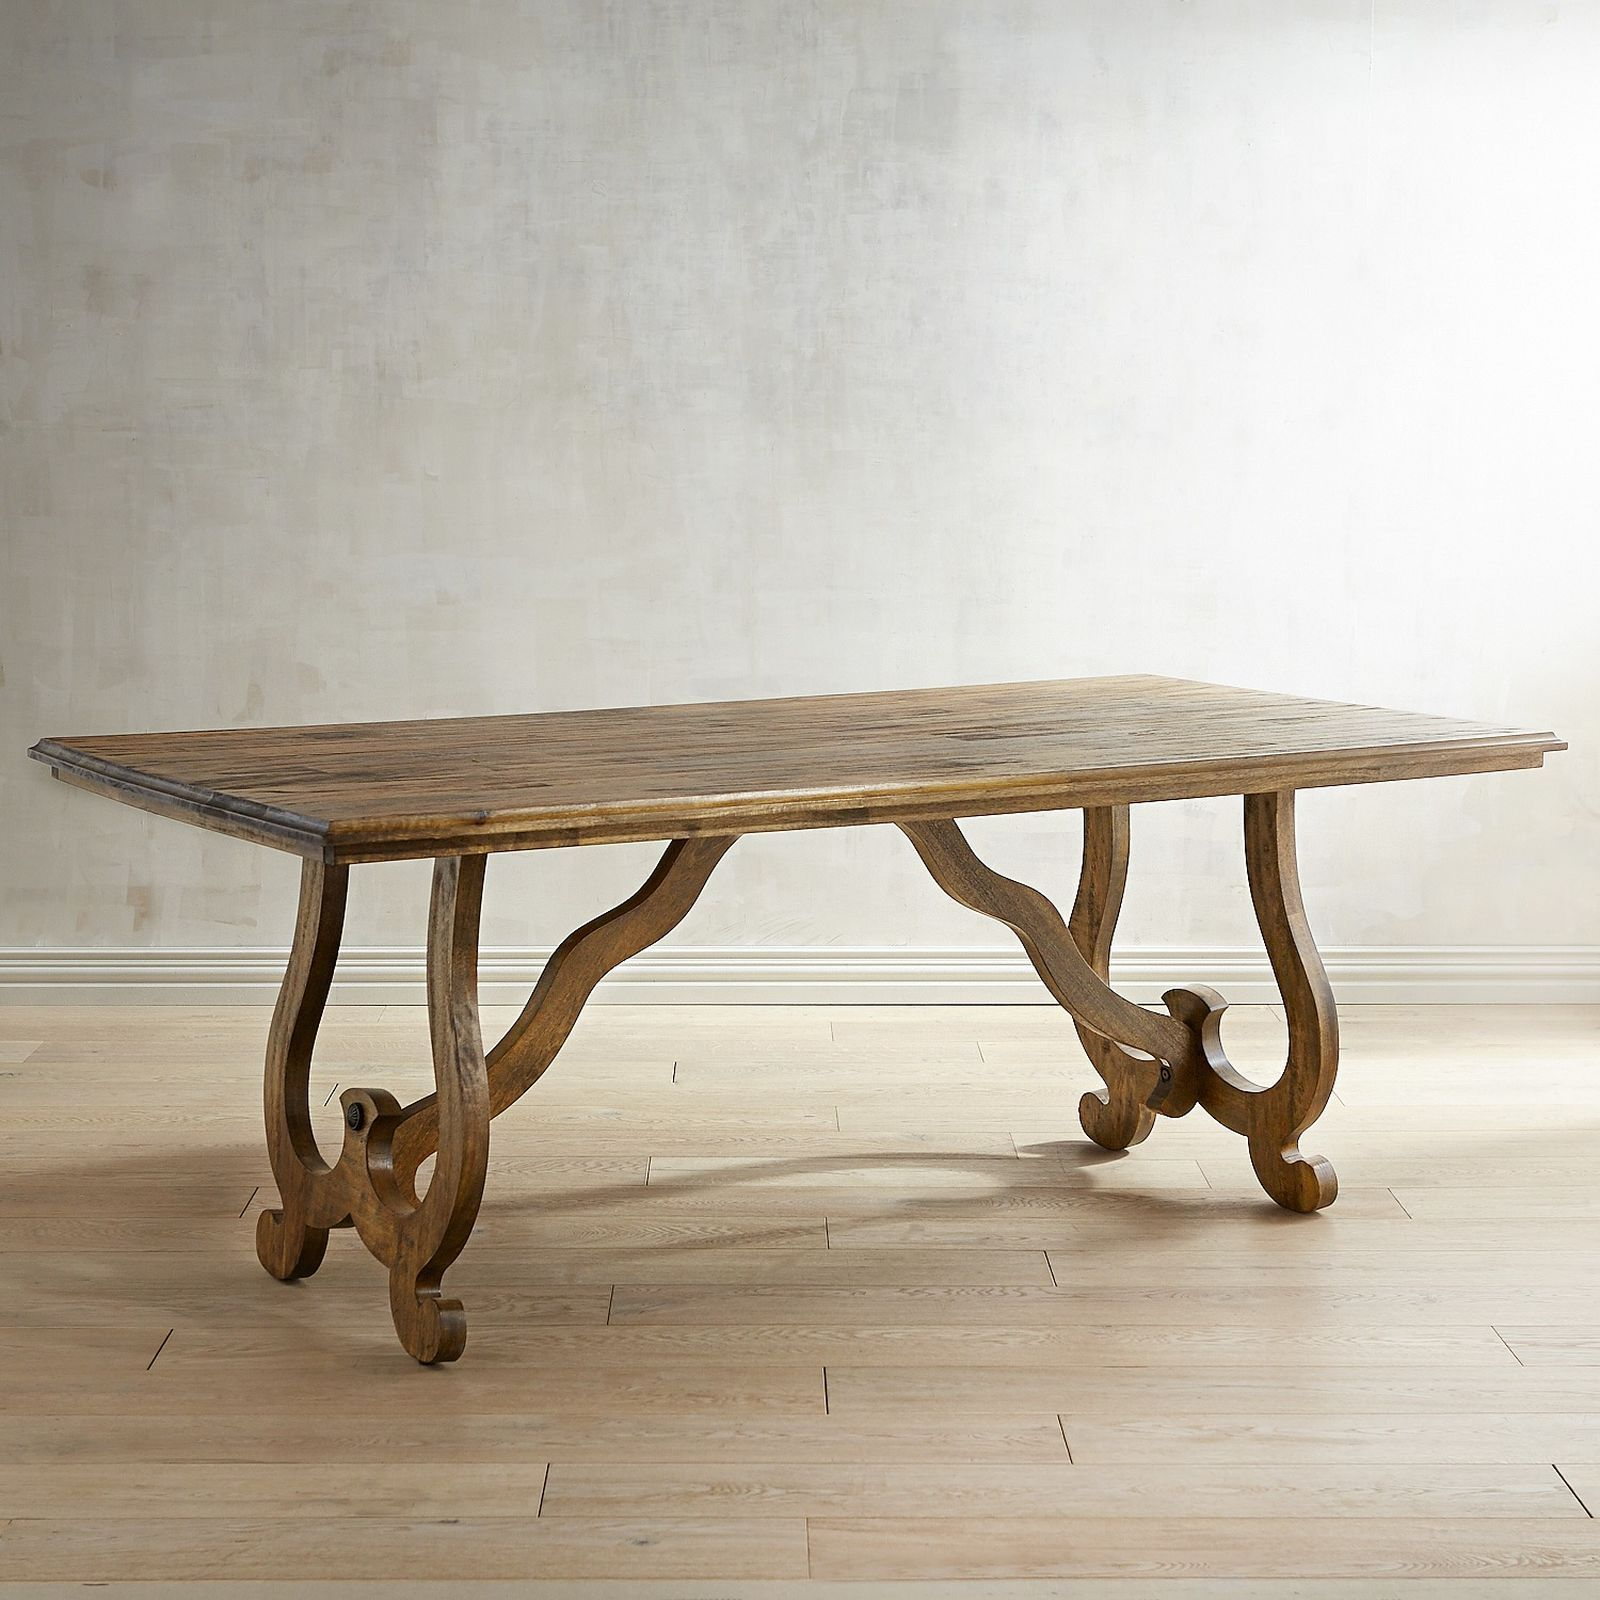 Handcrafted Of Solid Mango Wood Our Juniper Dining Table Is The Ideal Combination Of Rustic Beauty An Wooden Dining Room Chairs Dining Table Dining Room Table [ 1600 x 1600 Pixel ]